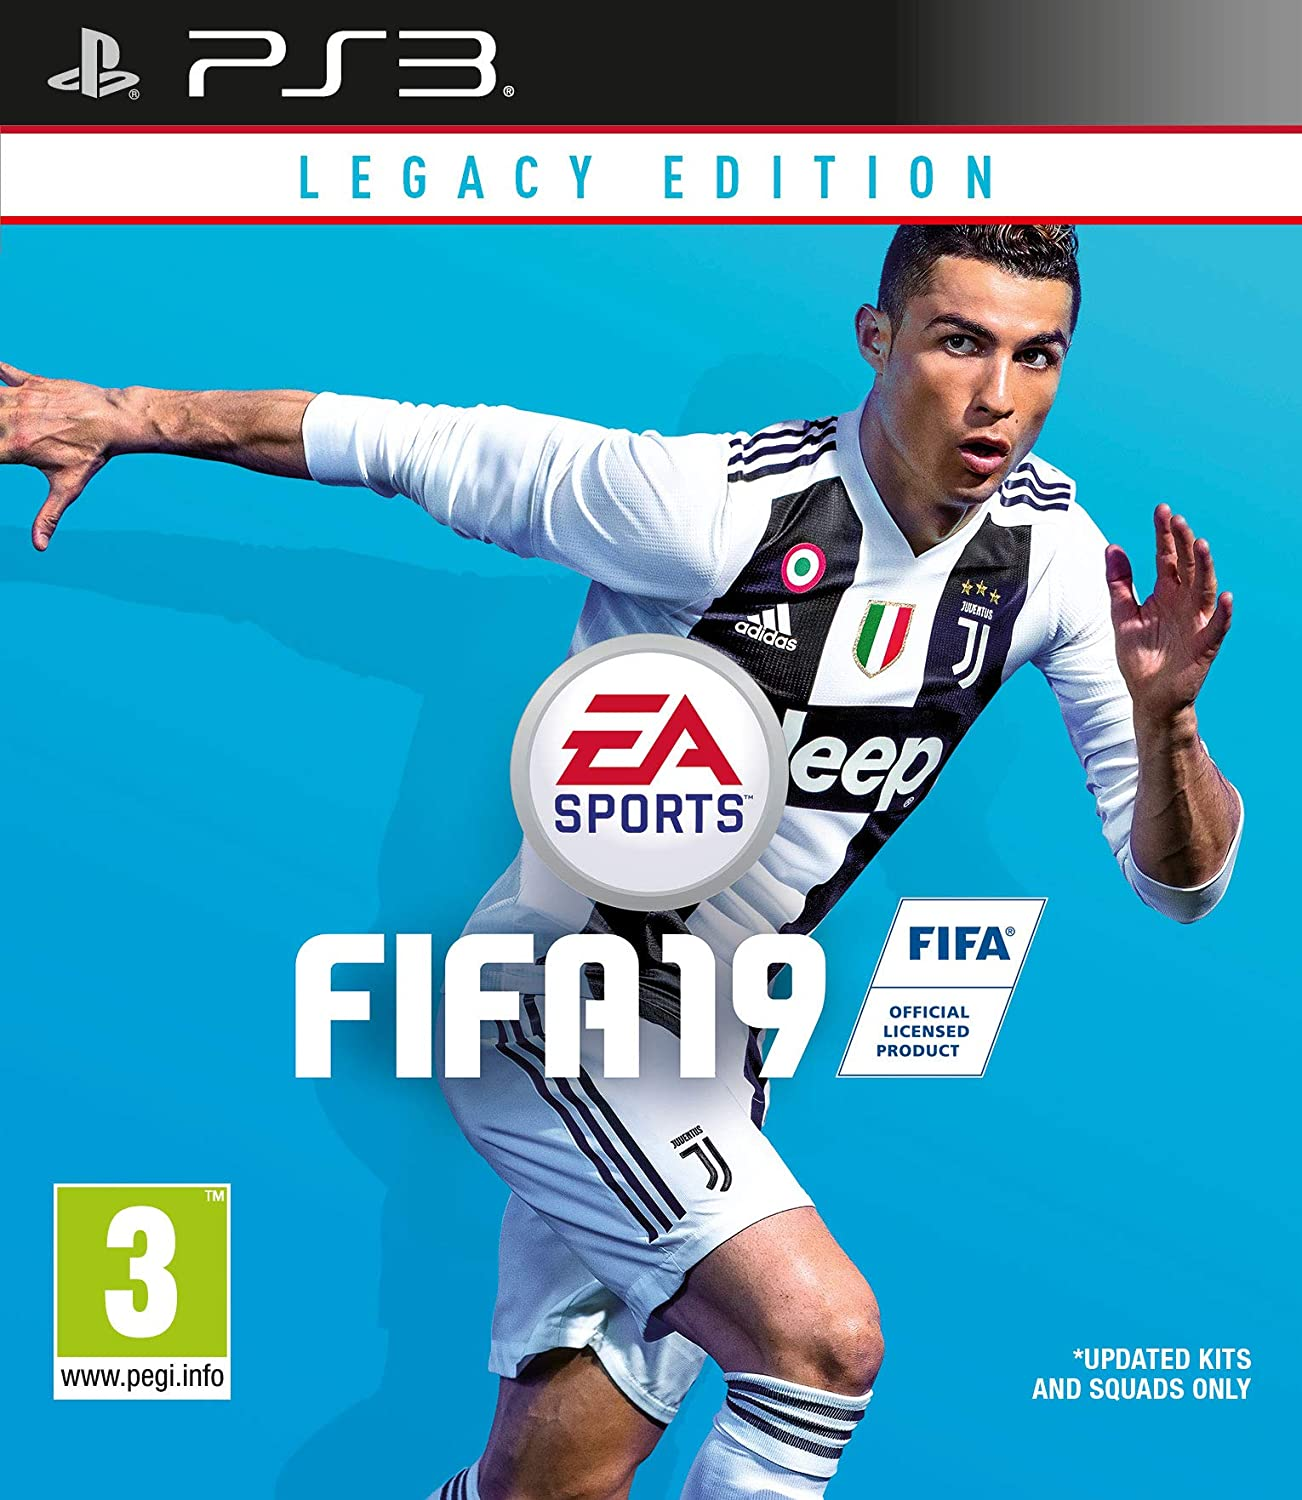 تحميل لعبة FIFA 19 PS3 - DUPLEX بروابط مباشره DLGAMES - Download All Your Games For Free